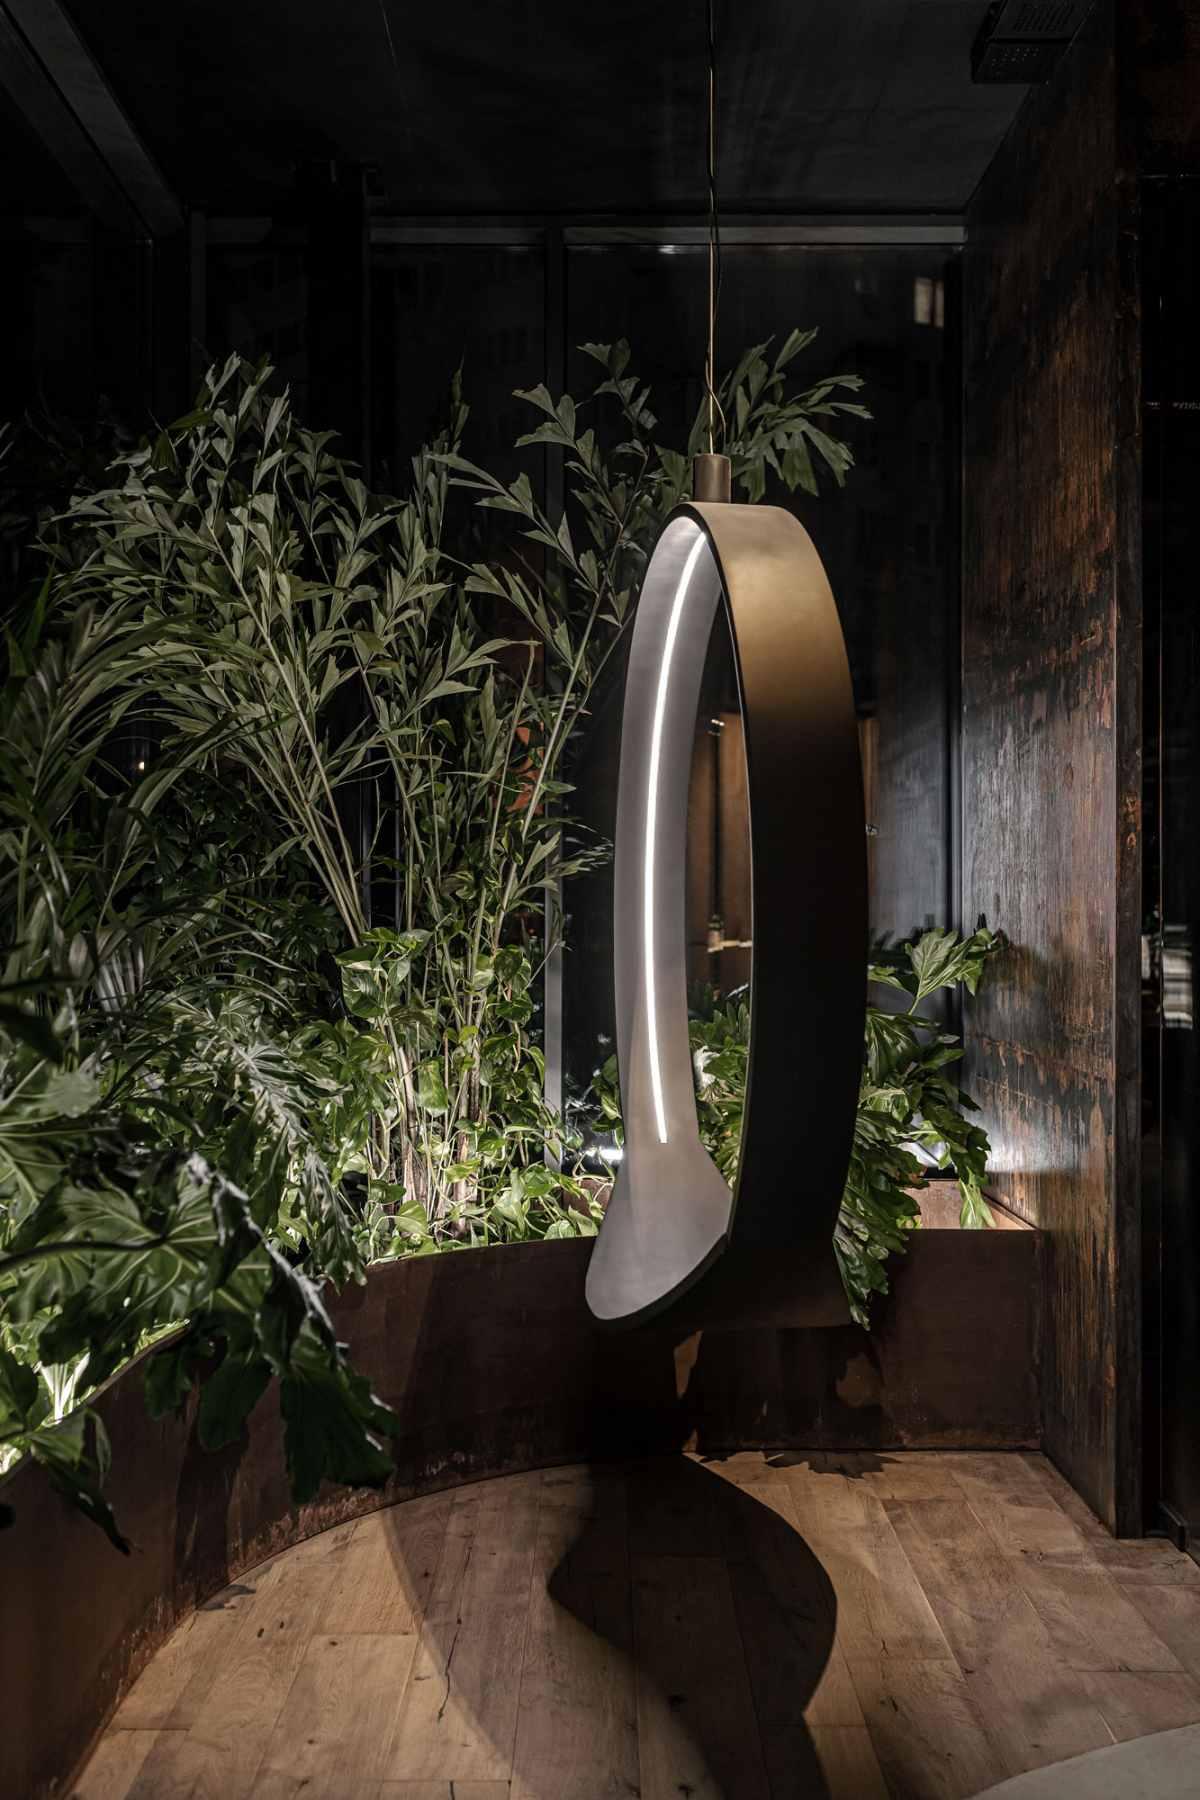 The greenery and the lighting play a very important role in the design and the identity of this place